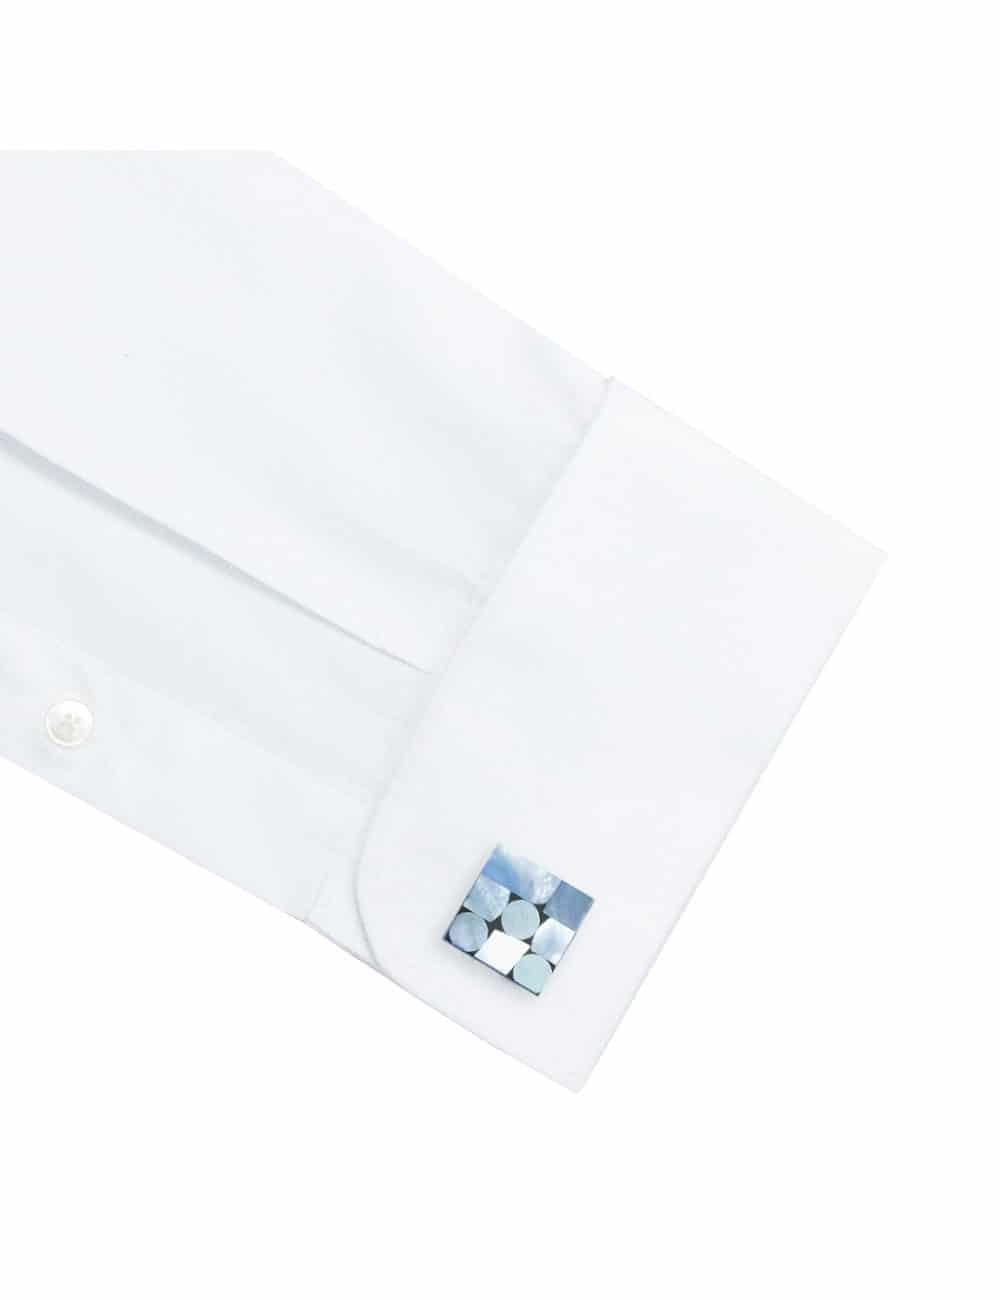 Modern Fit 100% Premium Cotton Classic Collar Solid White Pleated Long Sleeve Double Cuff Tuxedo Shirt with Pleated Front Bib and Button Studs, Long Lasting White Finishing MF2RT2.NOS